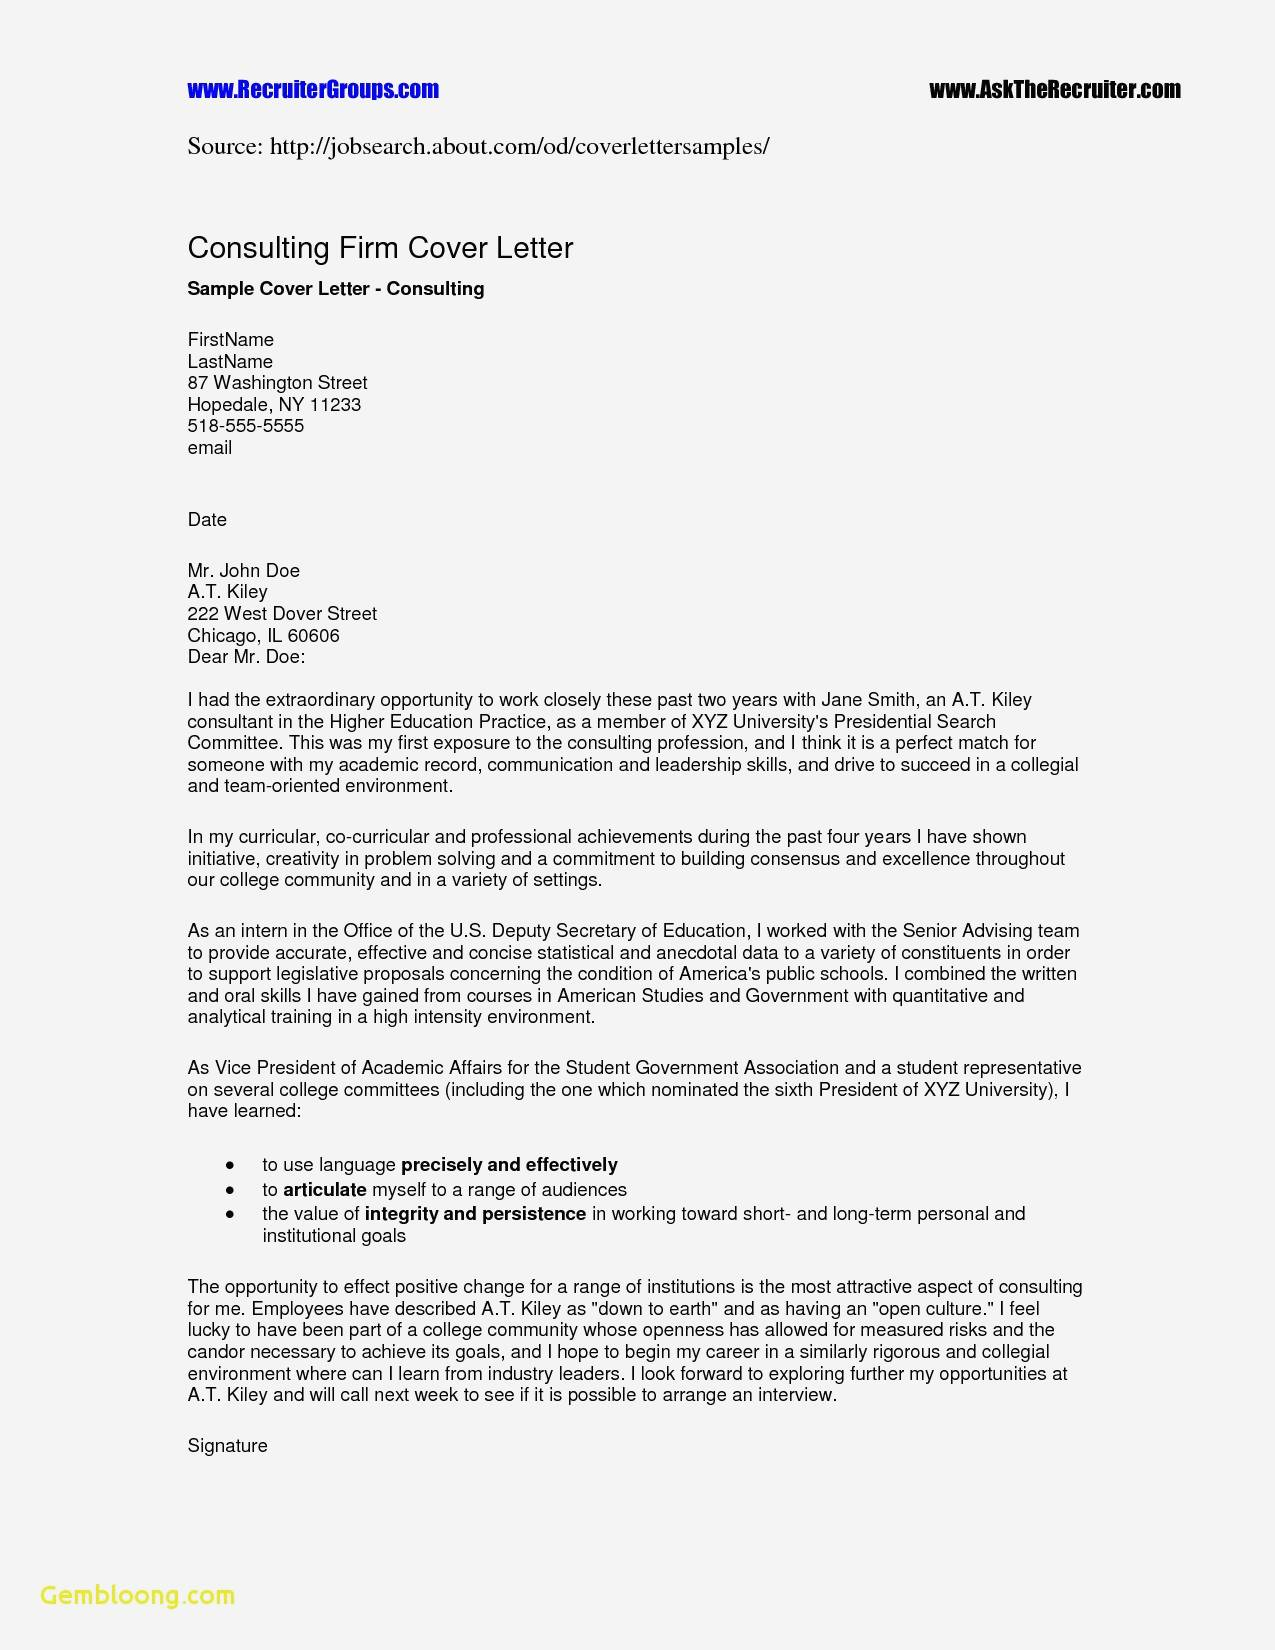 open office resume cover letter template example-Bcg Coverr Choice Image Sample within isolution Me Resume Templates Concept Cv Modele Open fice 12-s